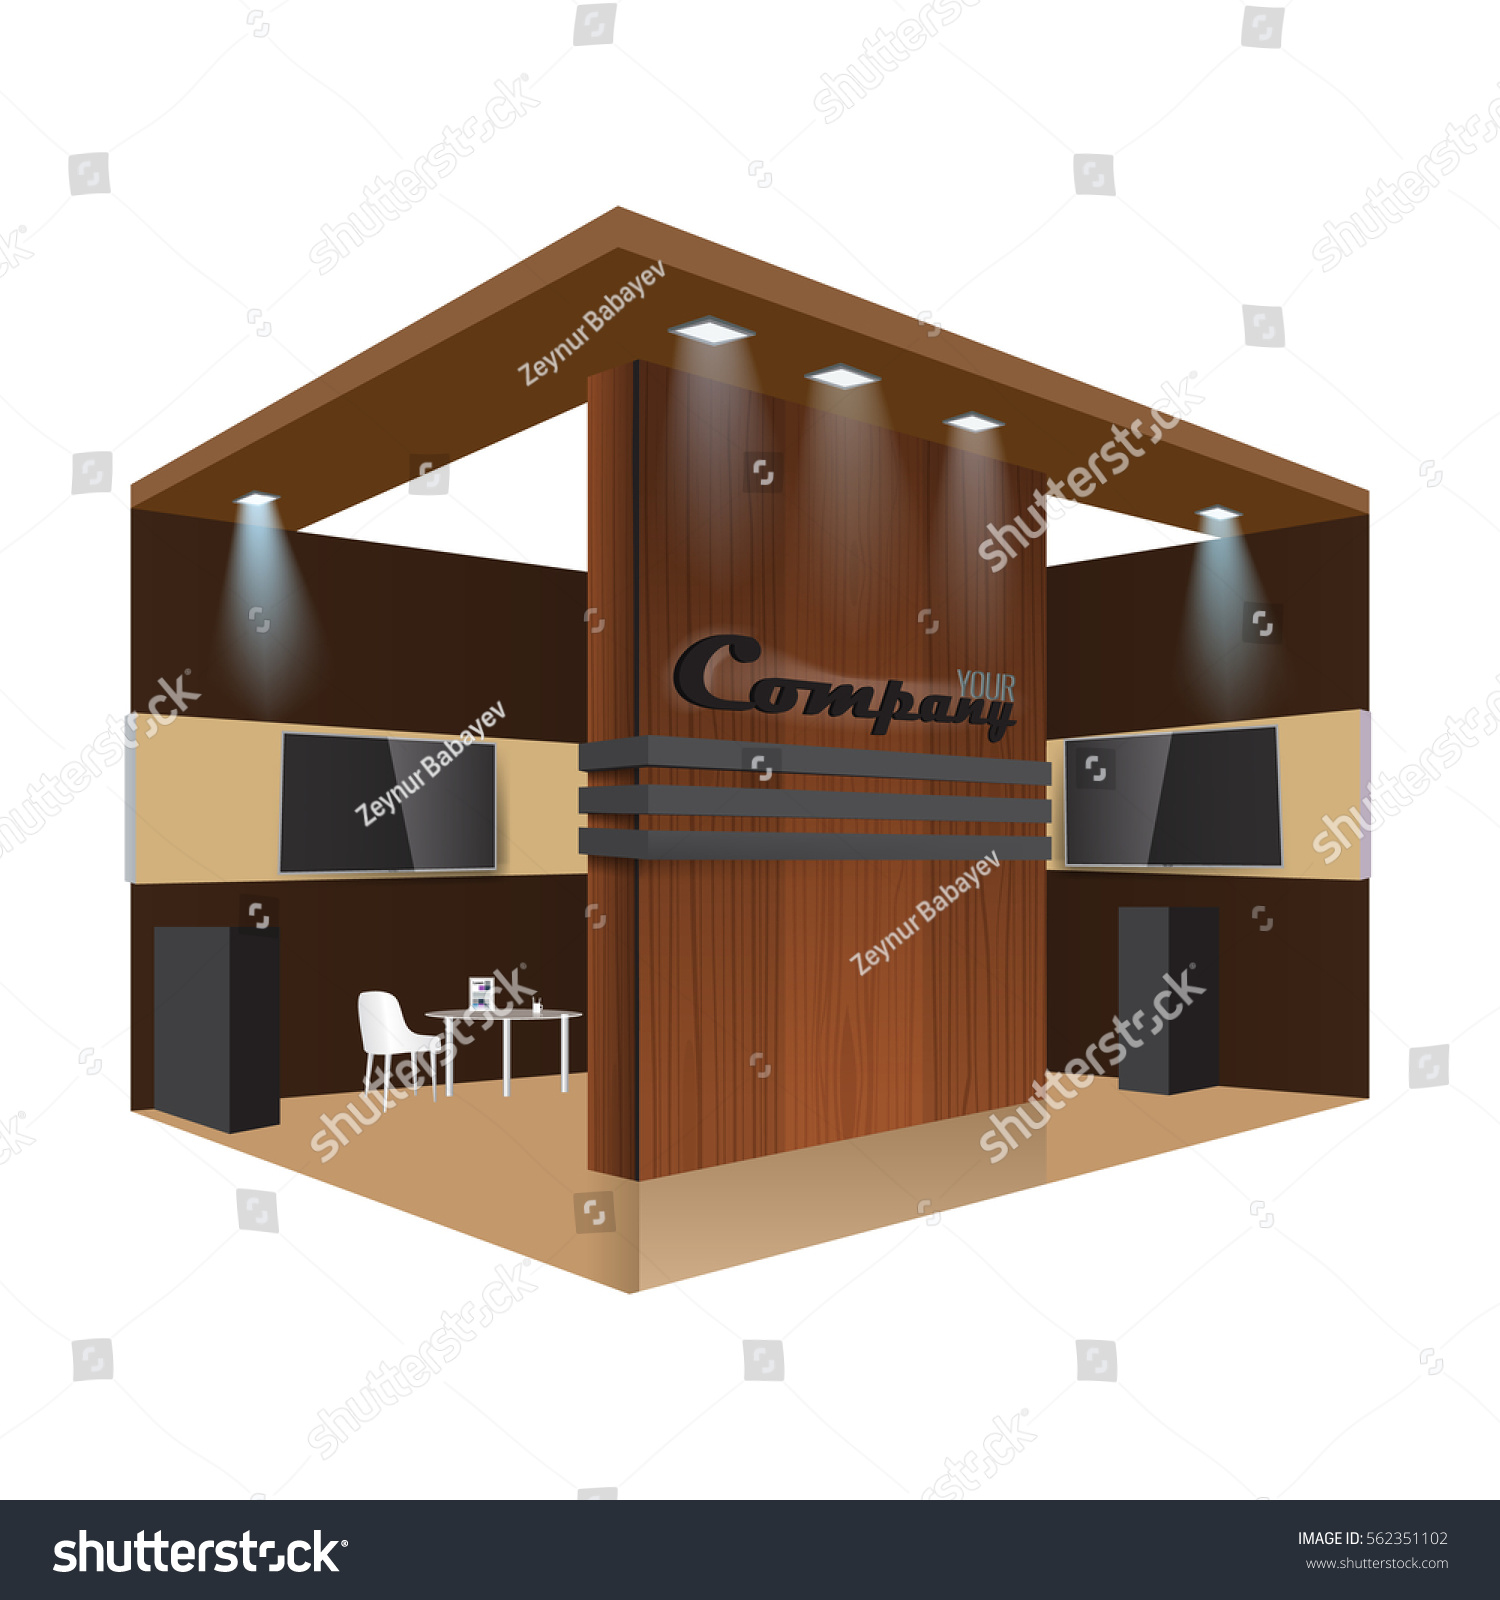 Exhibition Stand Design Vector : Illustrated unique creative wooden exhibition stand stock